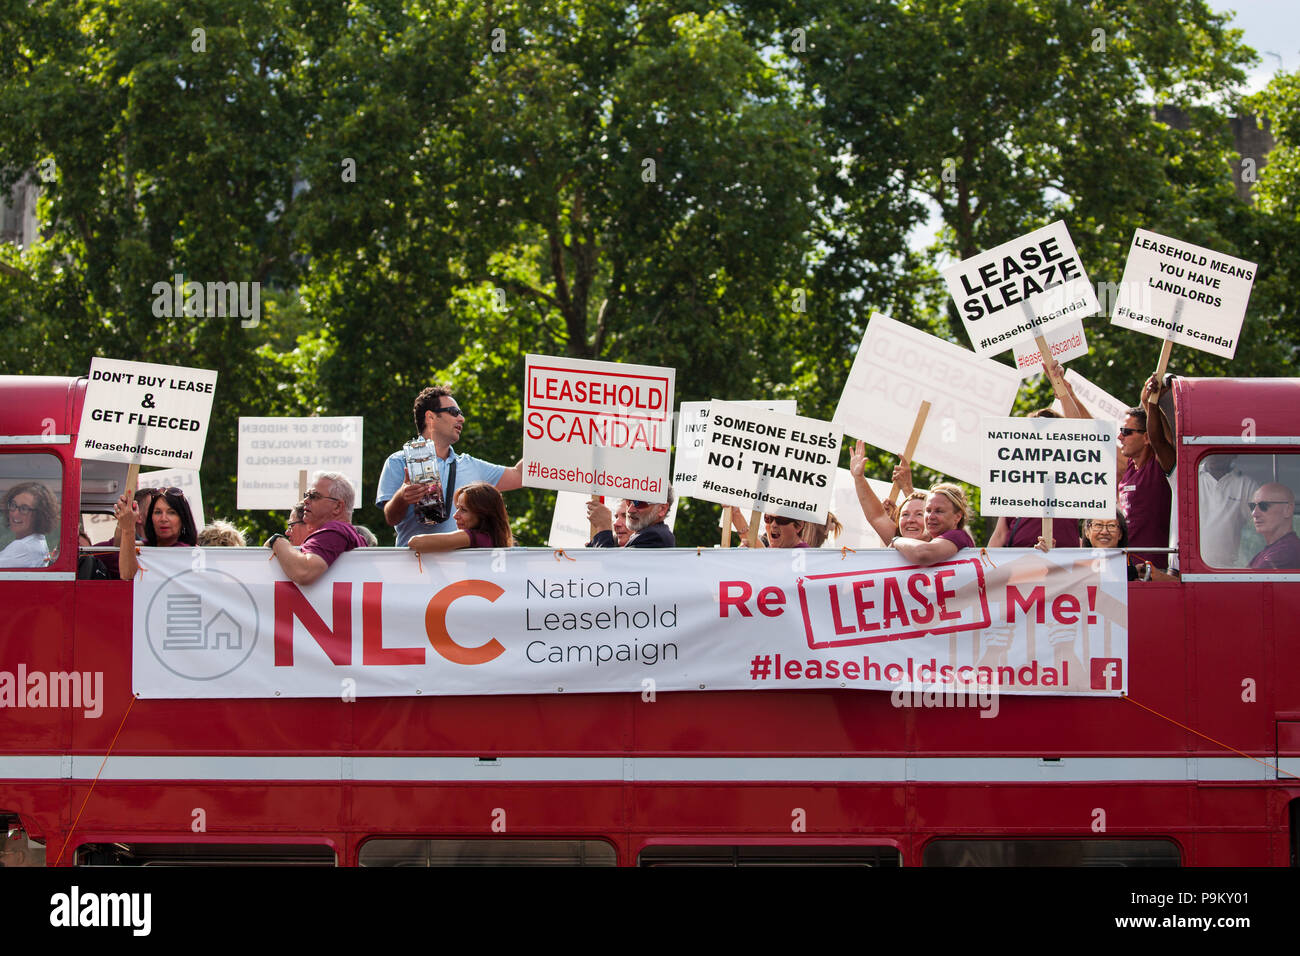 London, UK. 18th July, 2018. Activists from the National Leasehold Campaign protest in Westminster against the leasehold system of property rights, calling for leasehold to be abolished, for strict regulation of residential managing agents and for a Select Committee inquiry. Credit: Mark Kerrison/Alamy Live News - Stock Image